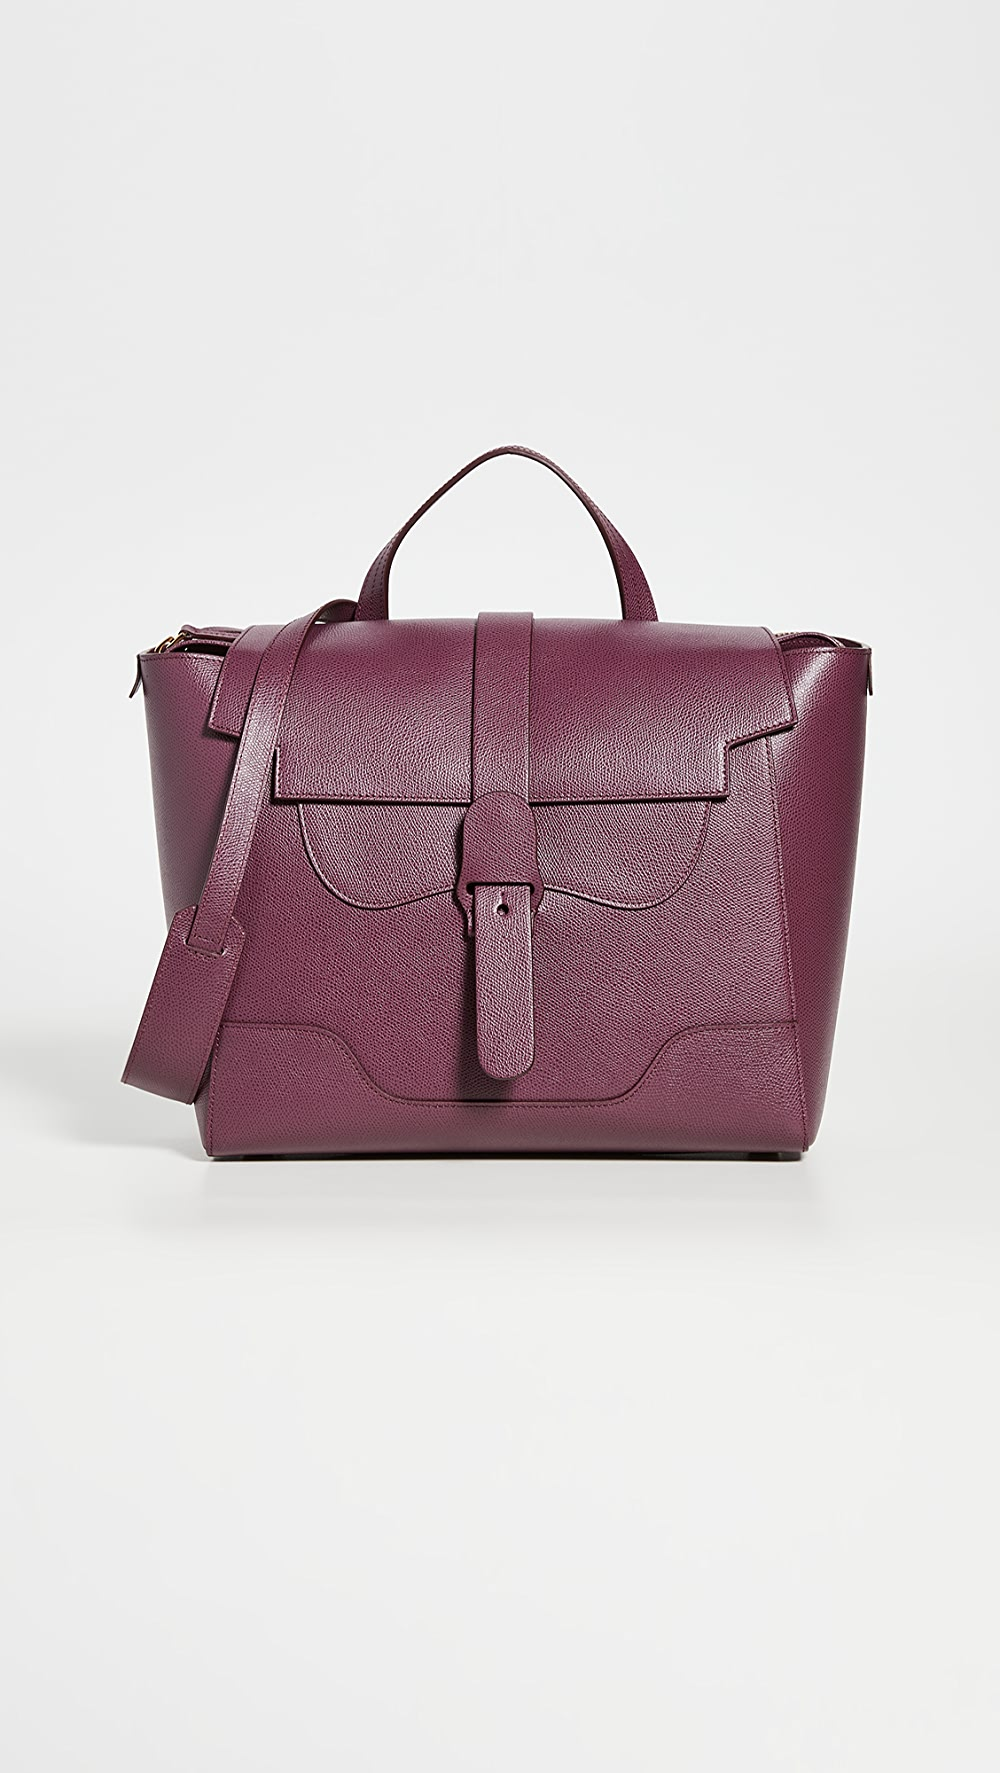 United Senreve - The Maestra Bag Excellent In Cushion Effect